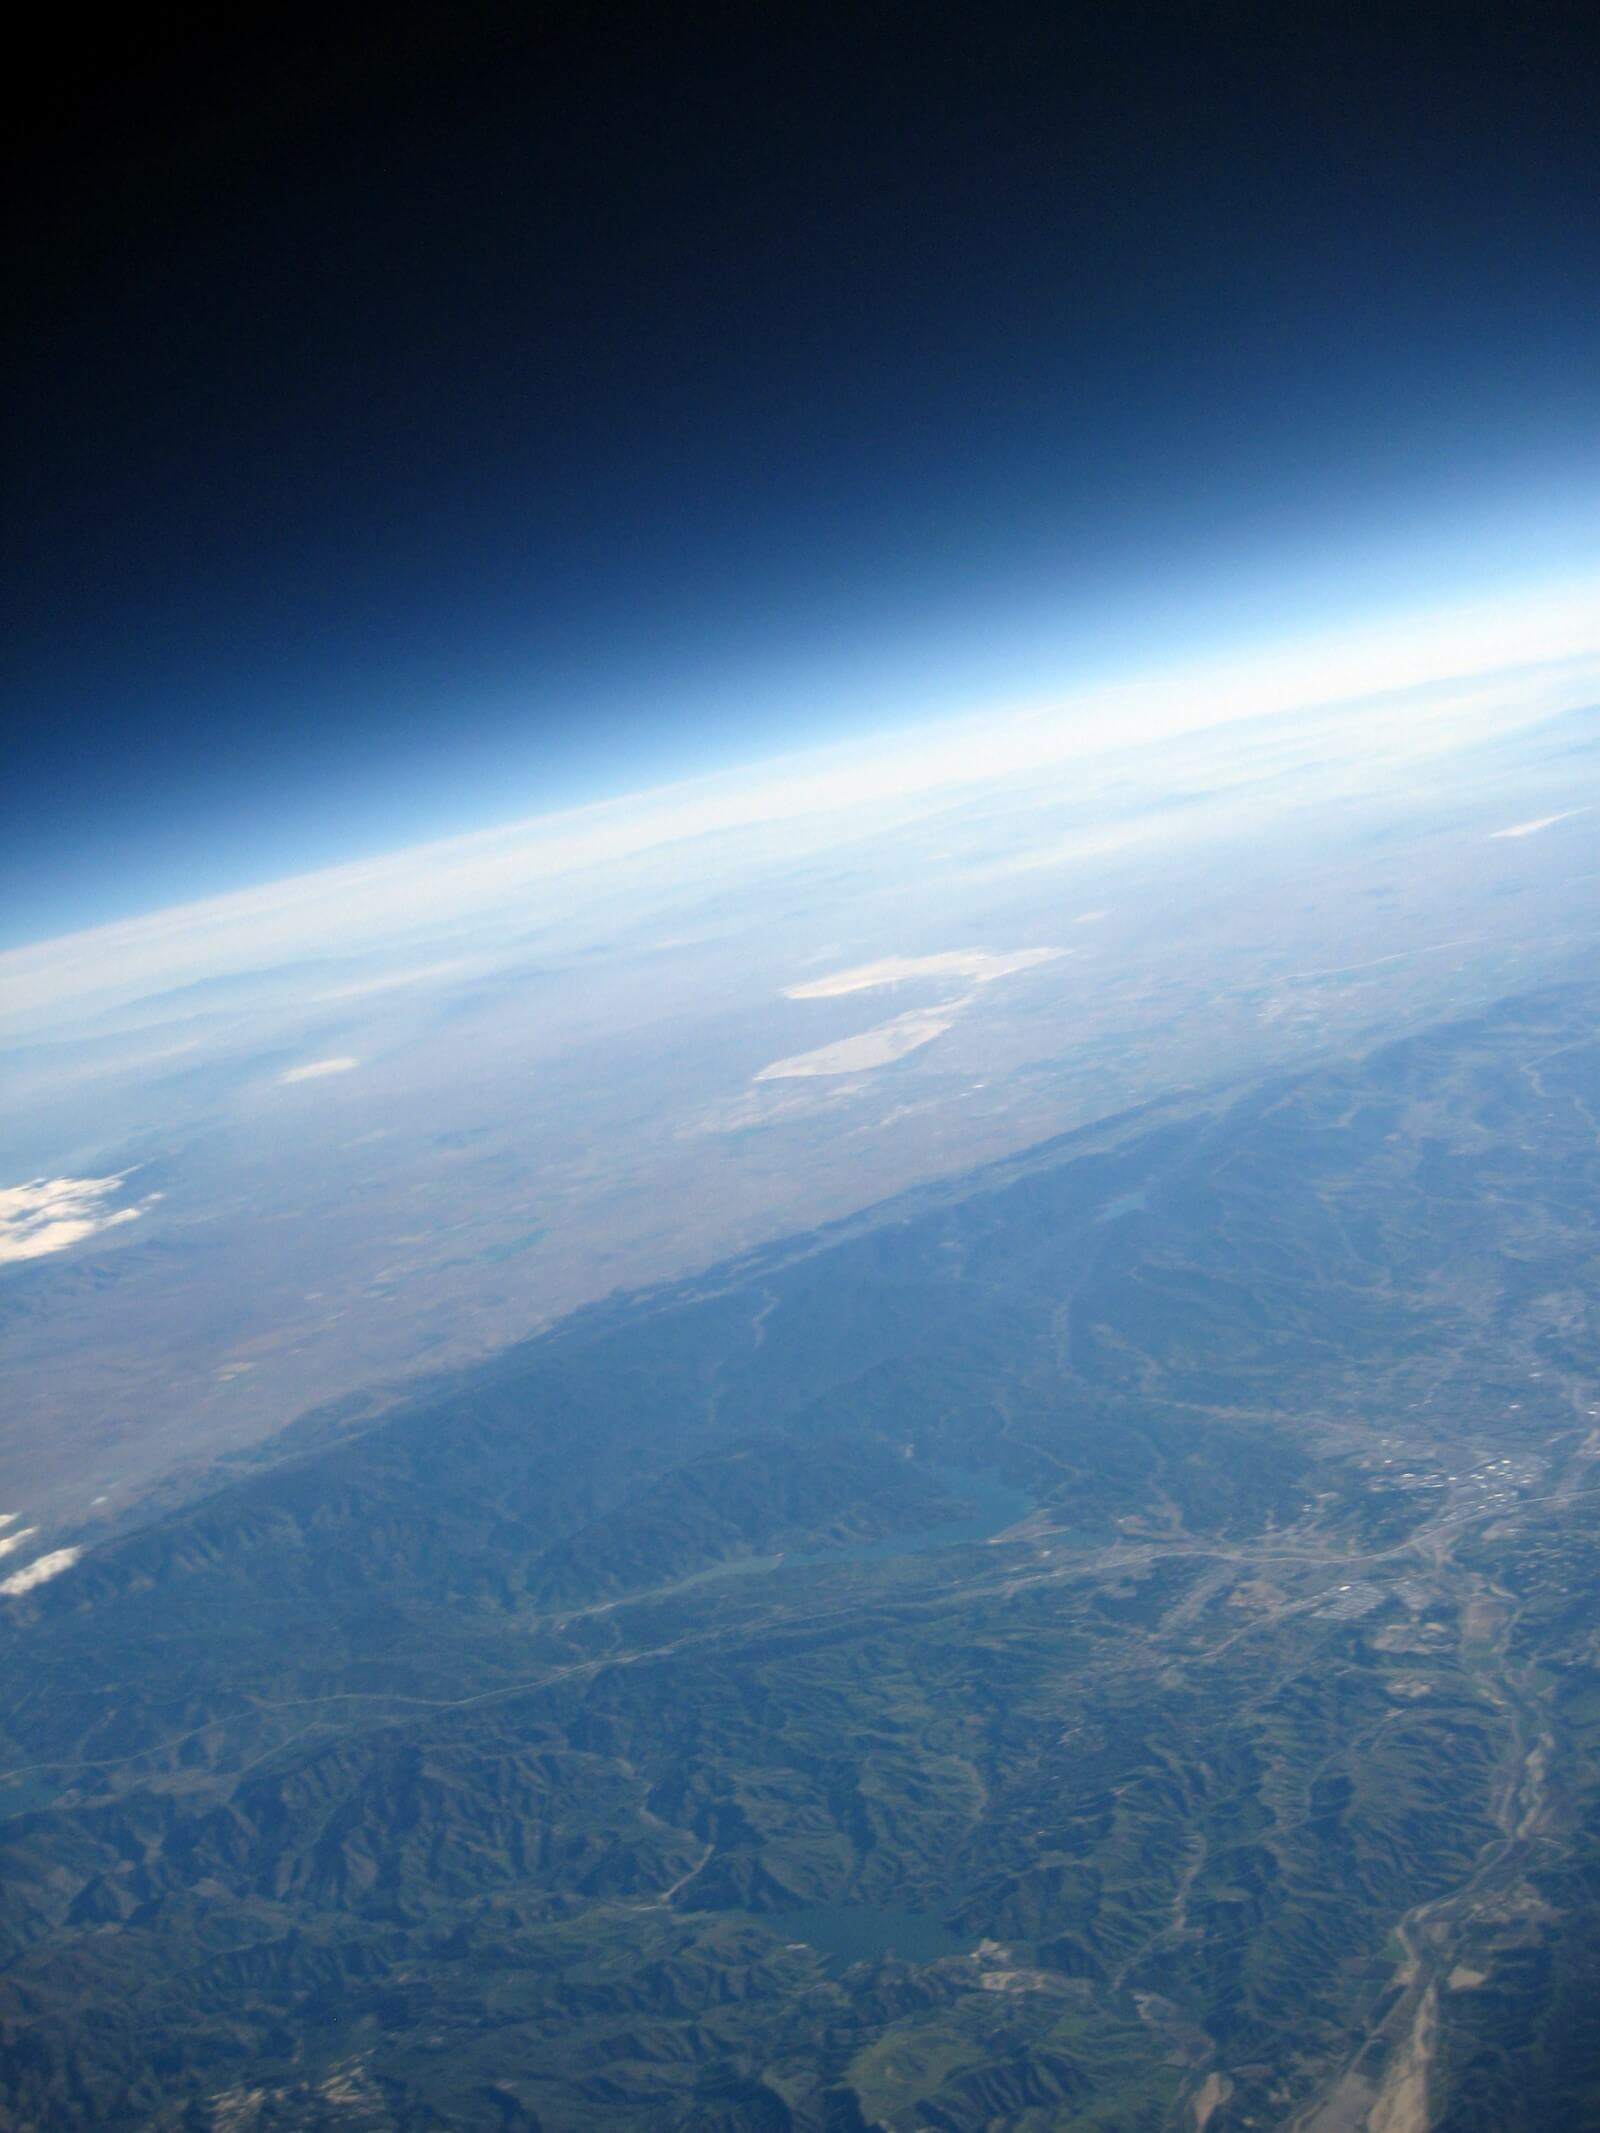 High-Altitude Balloons